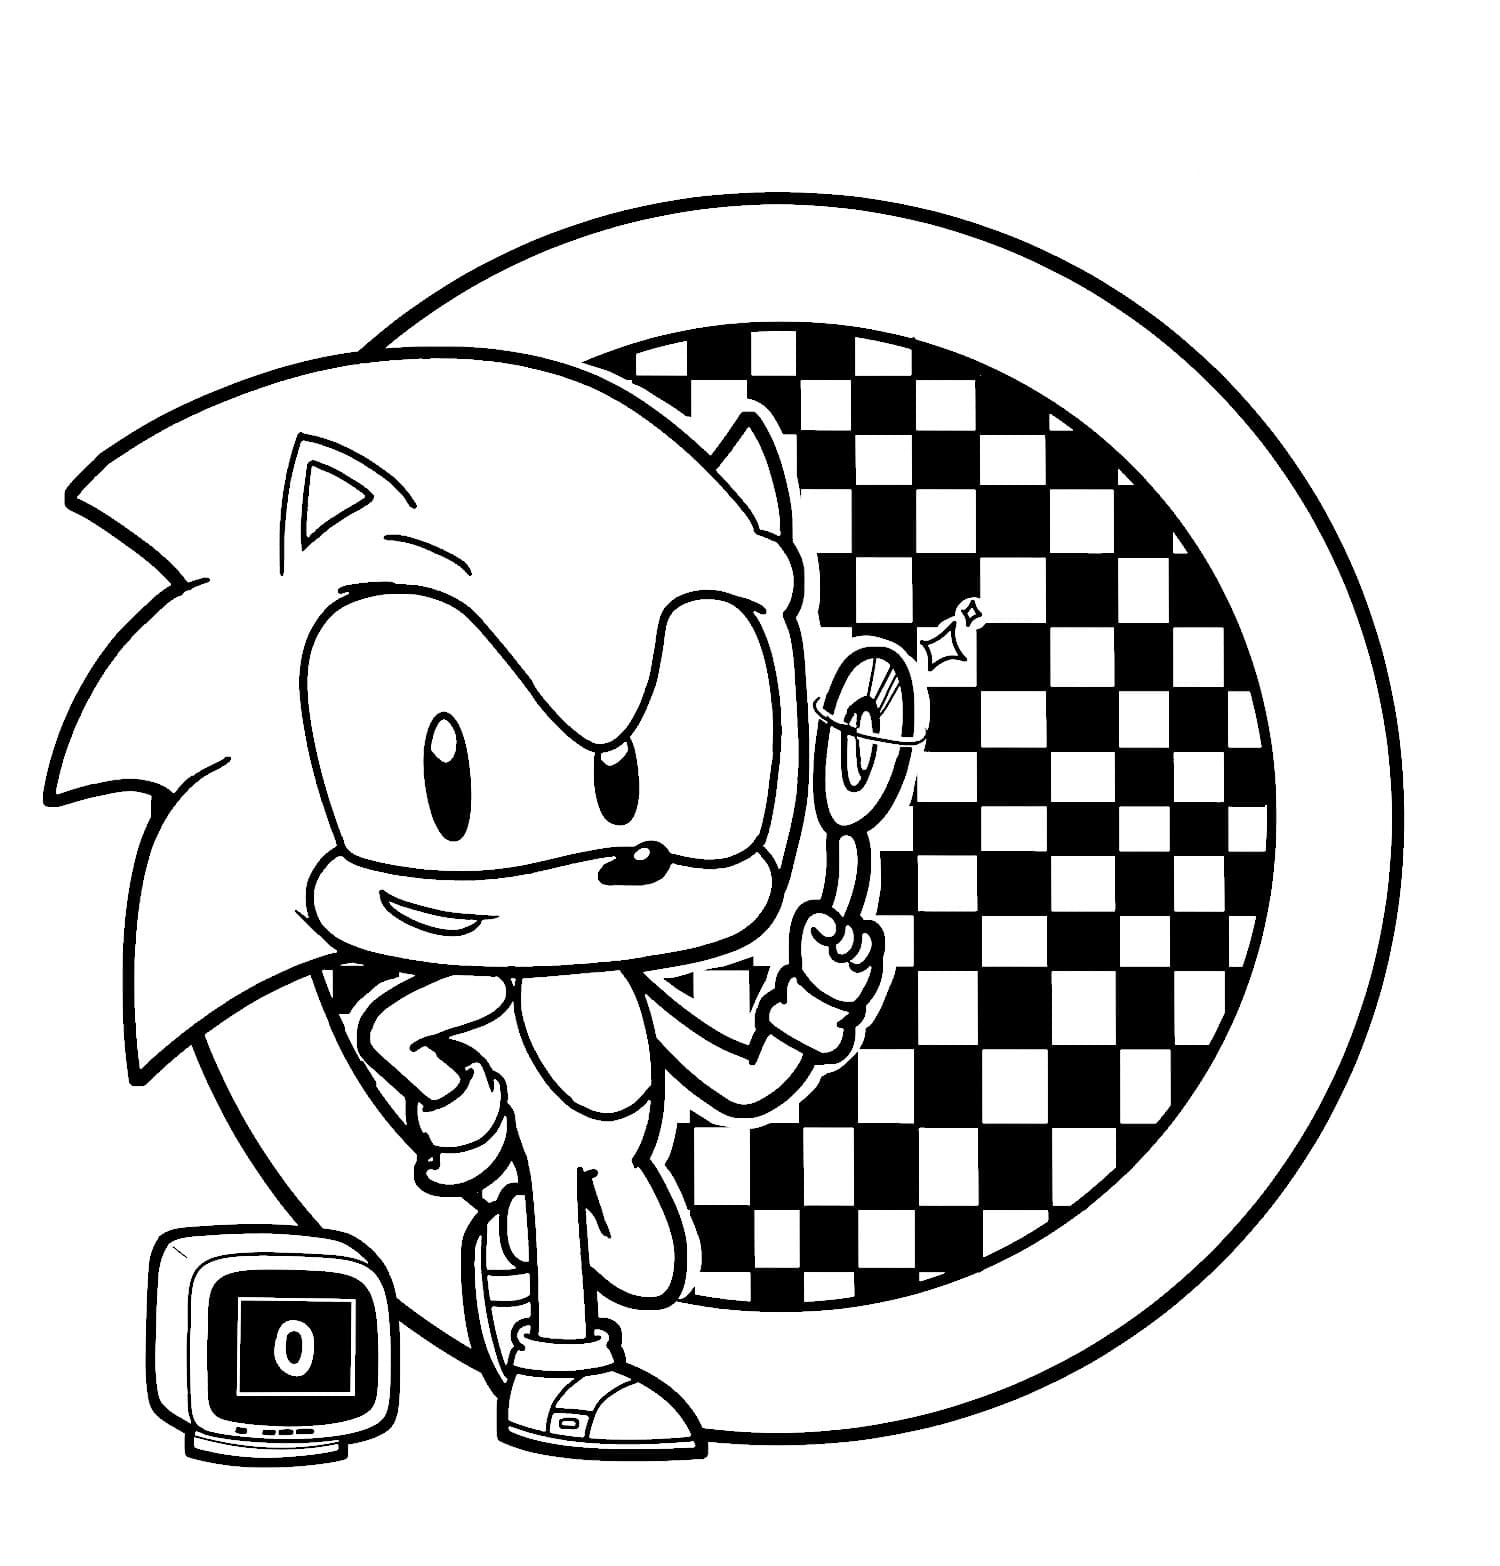 Sonic The Hedgehog Coloring Pages (120 Pieces). Print for free